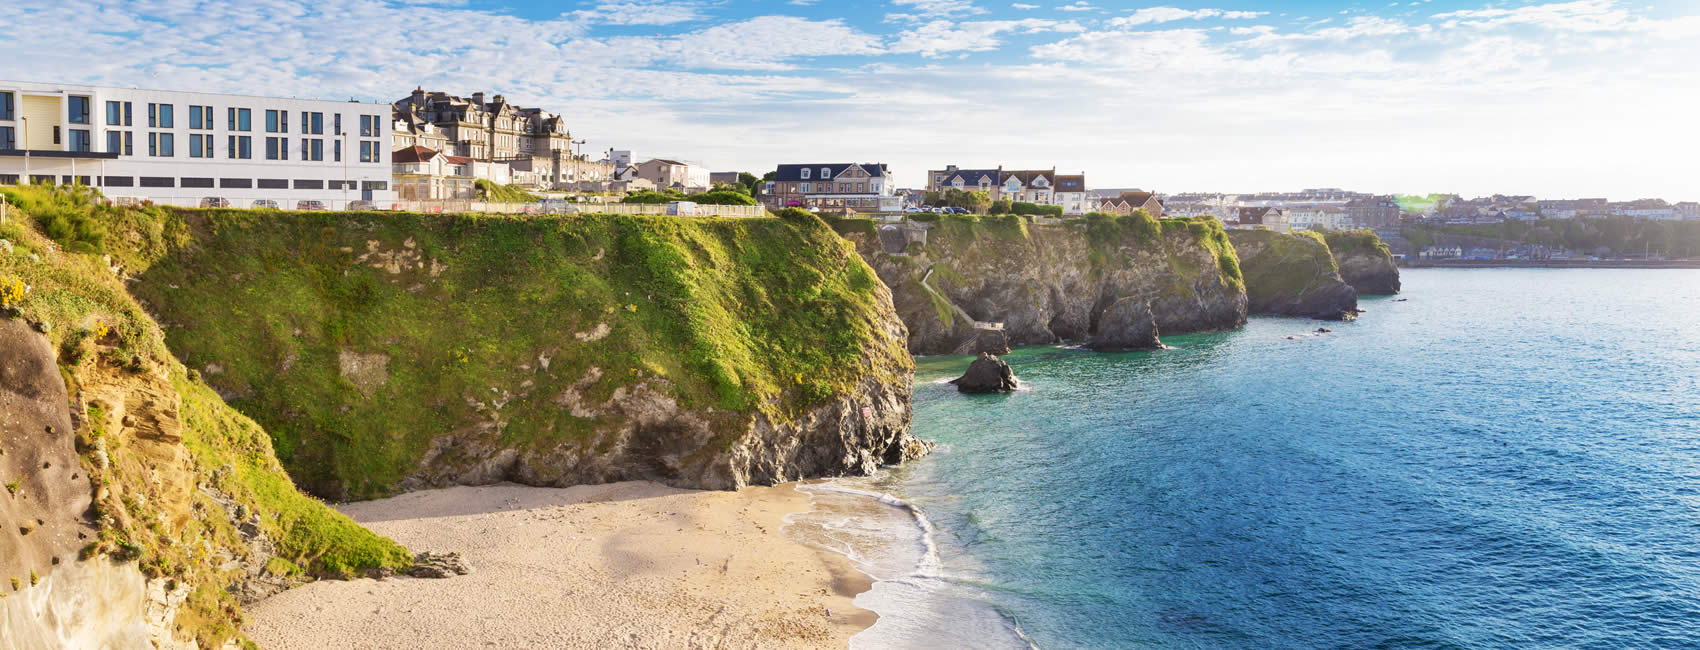 Town and beach in Newquay Cornwall